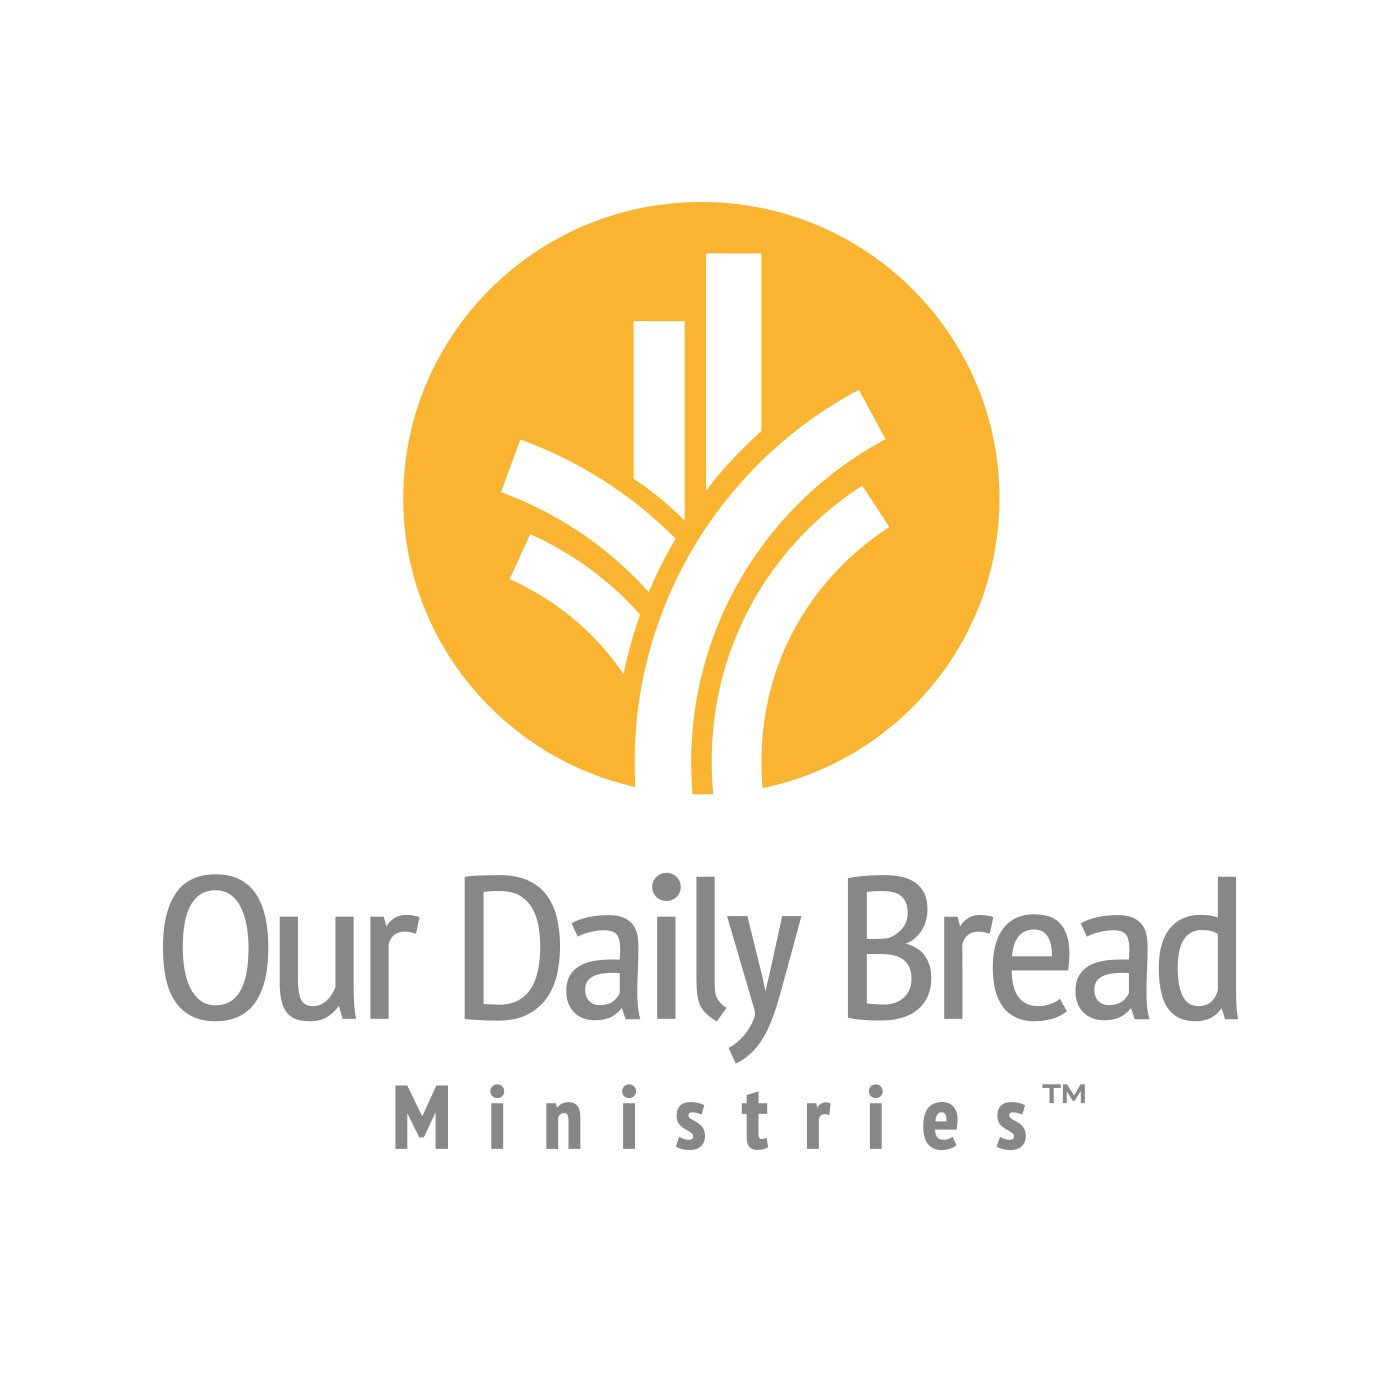 Our Daily Bread Thursday 14th January 2021, Our Daily Bread Thursday 14th January 2021 Devotional – Our Compassionate God, Latest Nigeria News, Daily Devotionals & Celebrity Gossips - Chidispalace